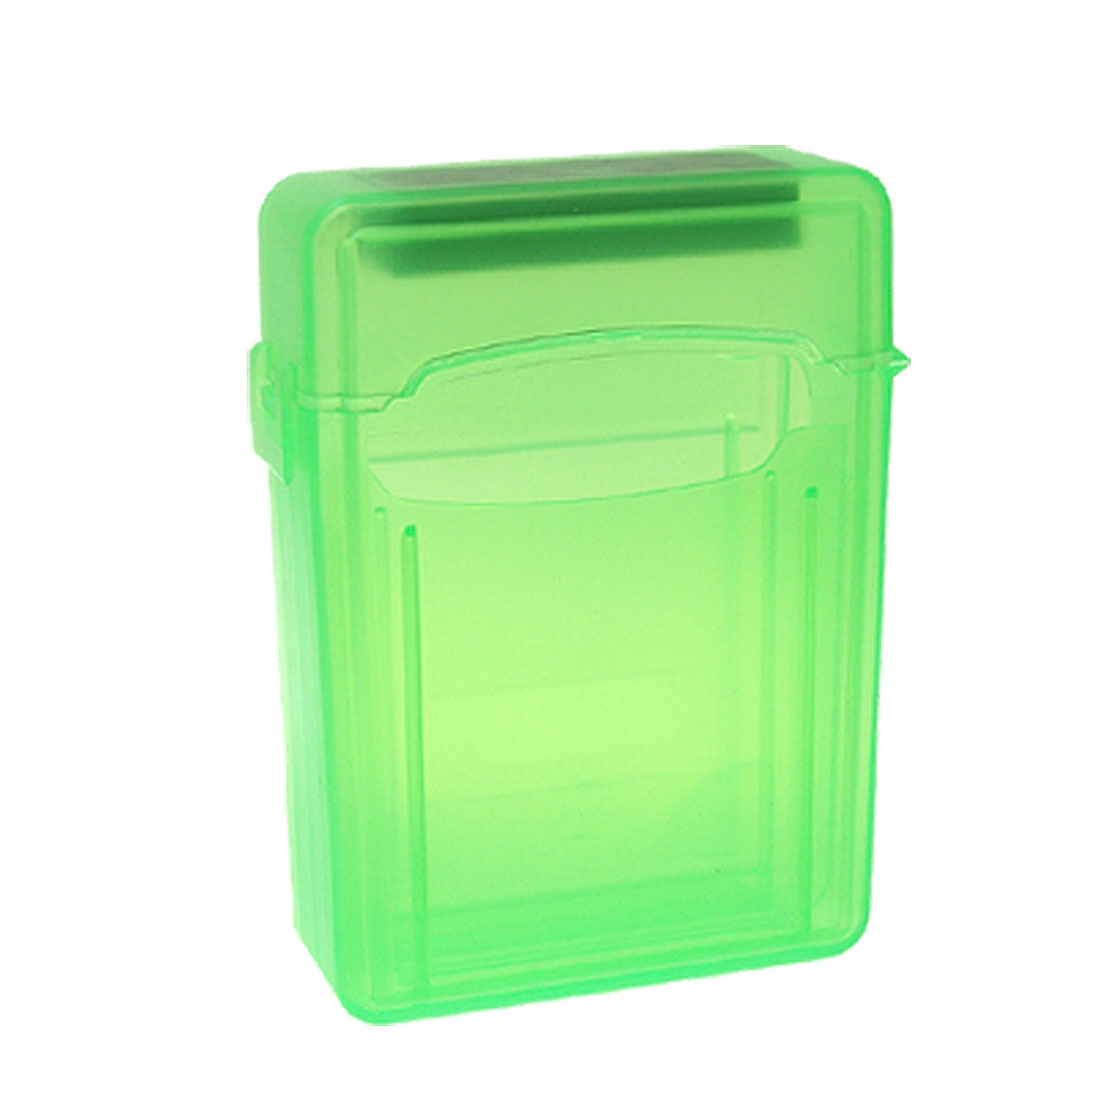 Green Plastic 2.5 Inch SATA IDE Hard Disk Drive Case HDD Store Tank Box